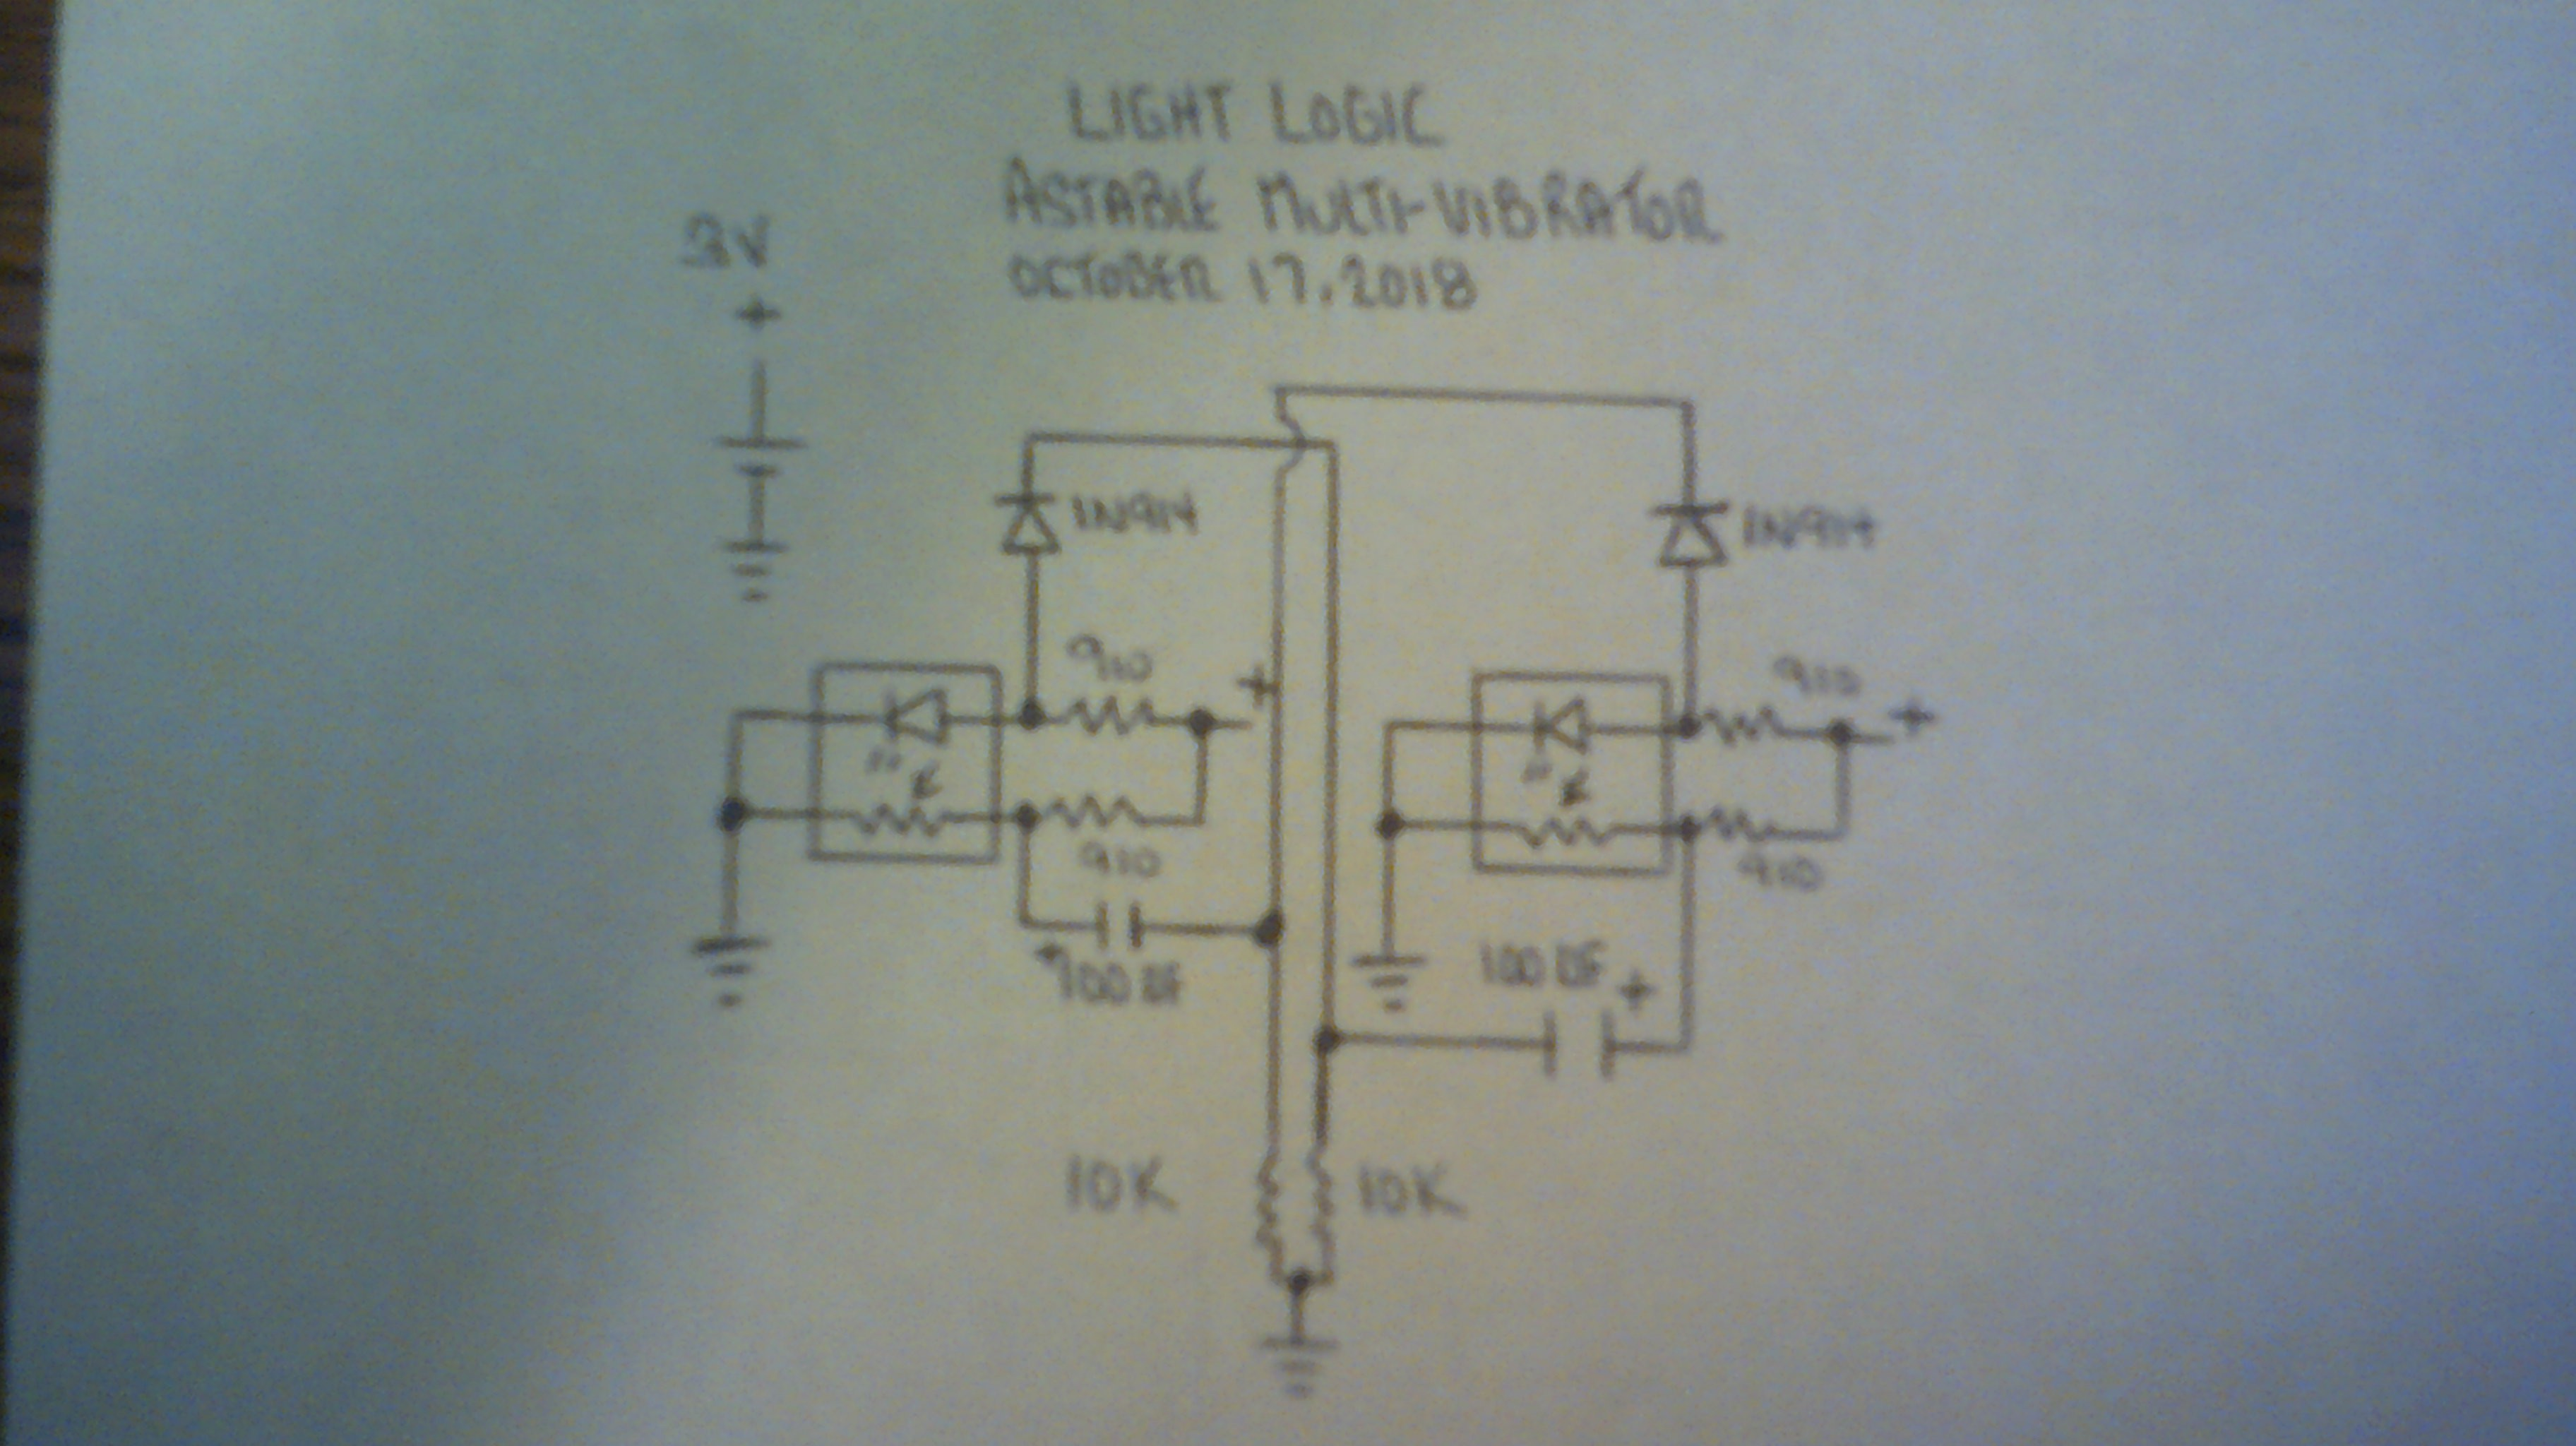 Project Light Logic The Circuit Diagram Of An Astable Multivibrator Using Operational Component Level Schematic Final